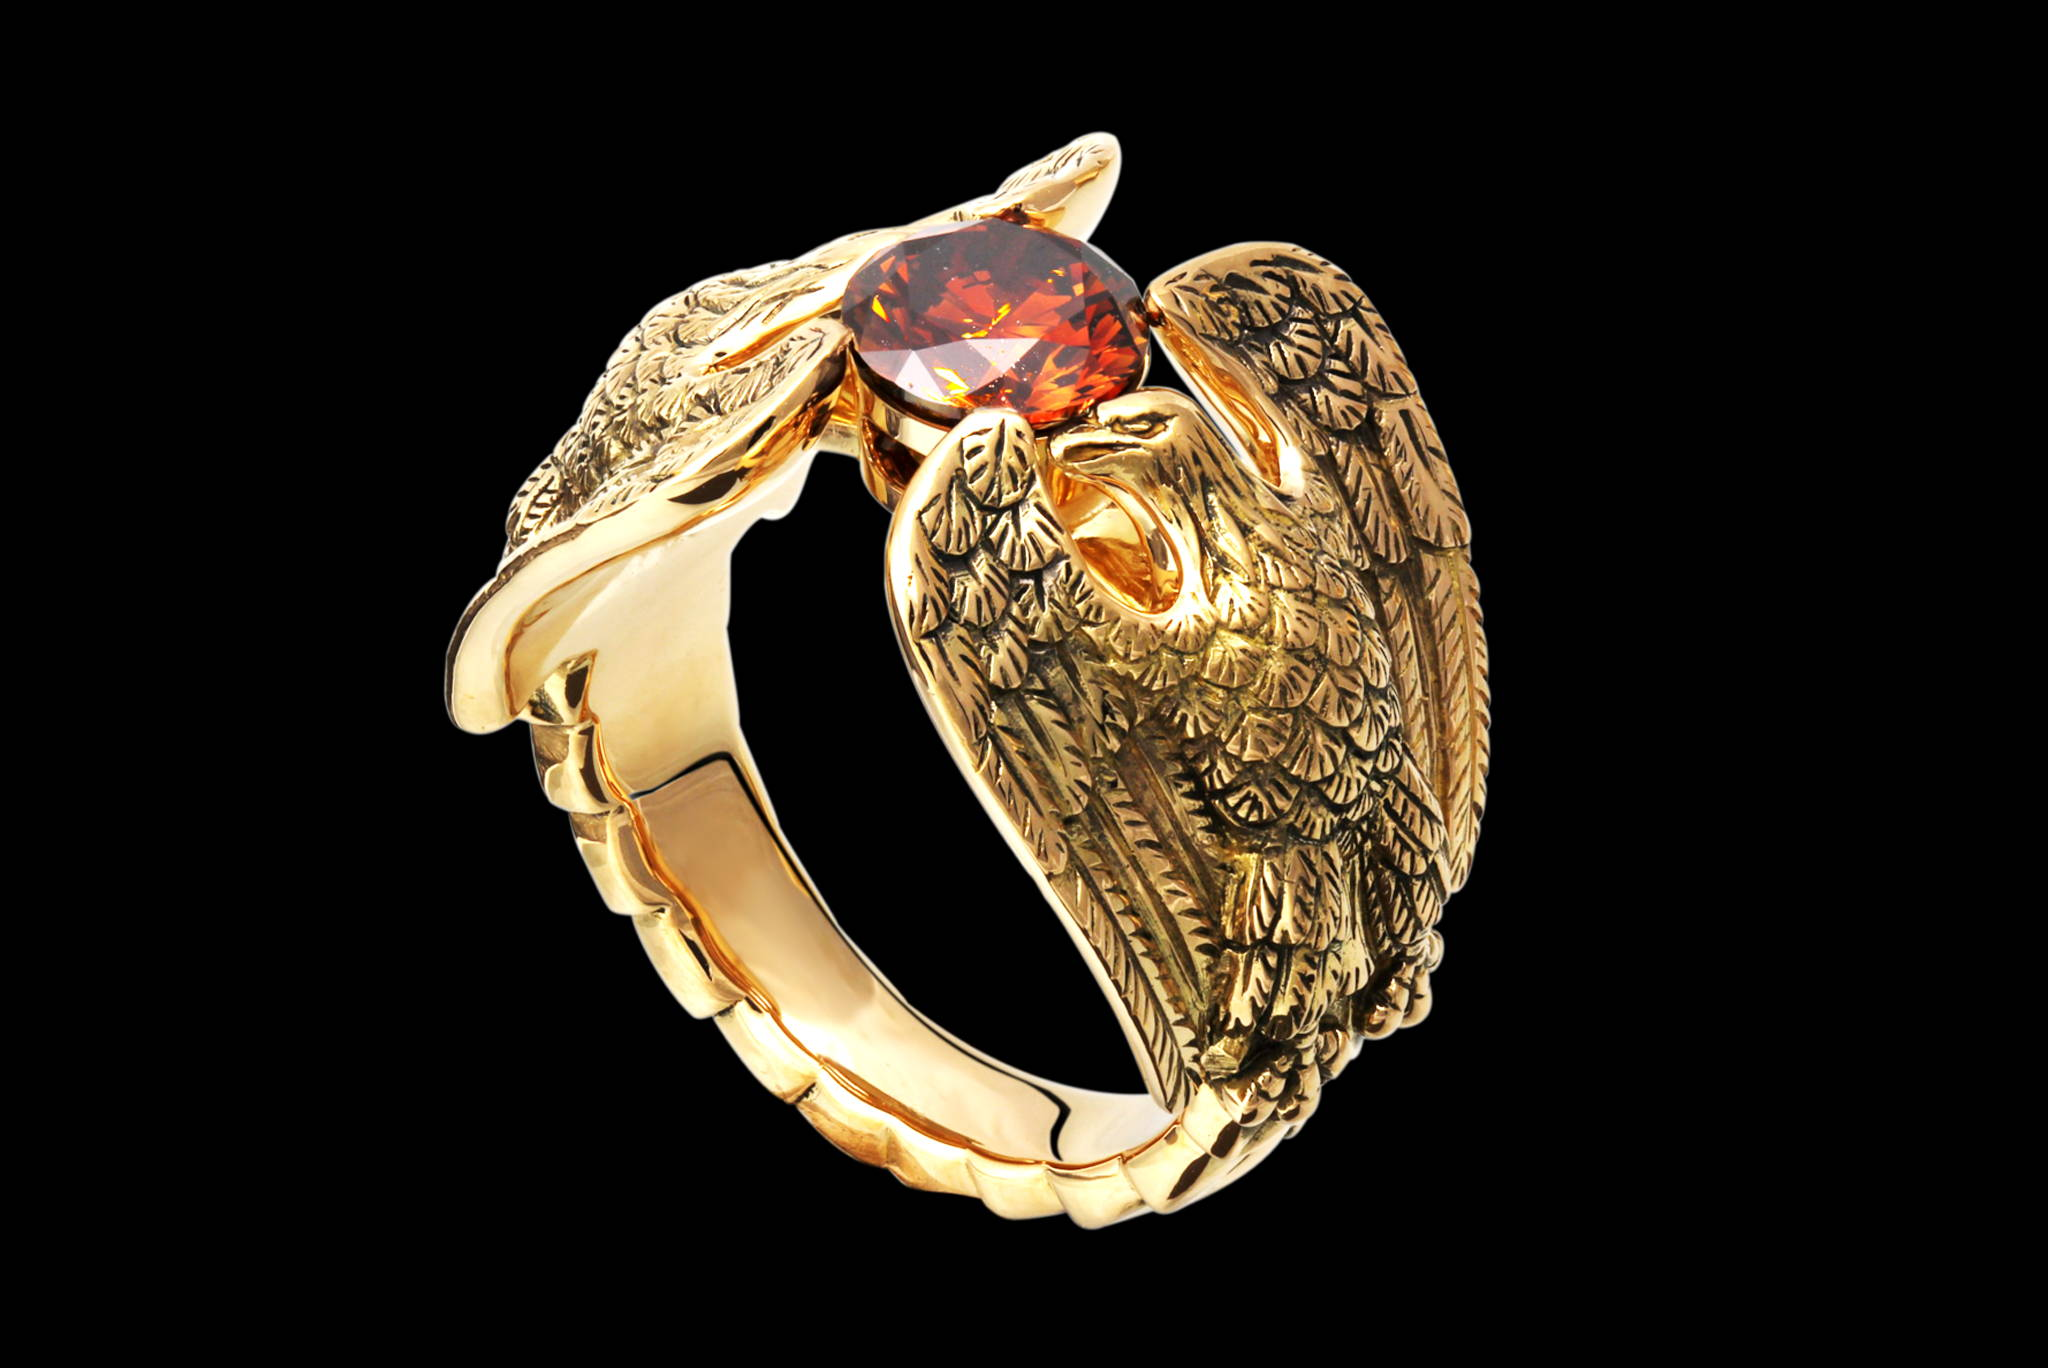 Imperium Romanum Ring 45 degrees view